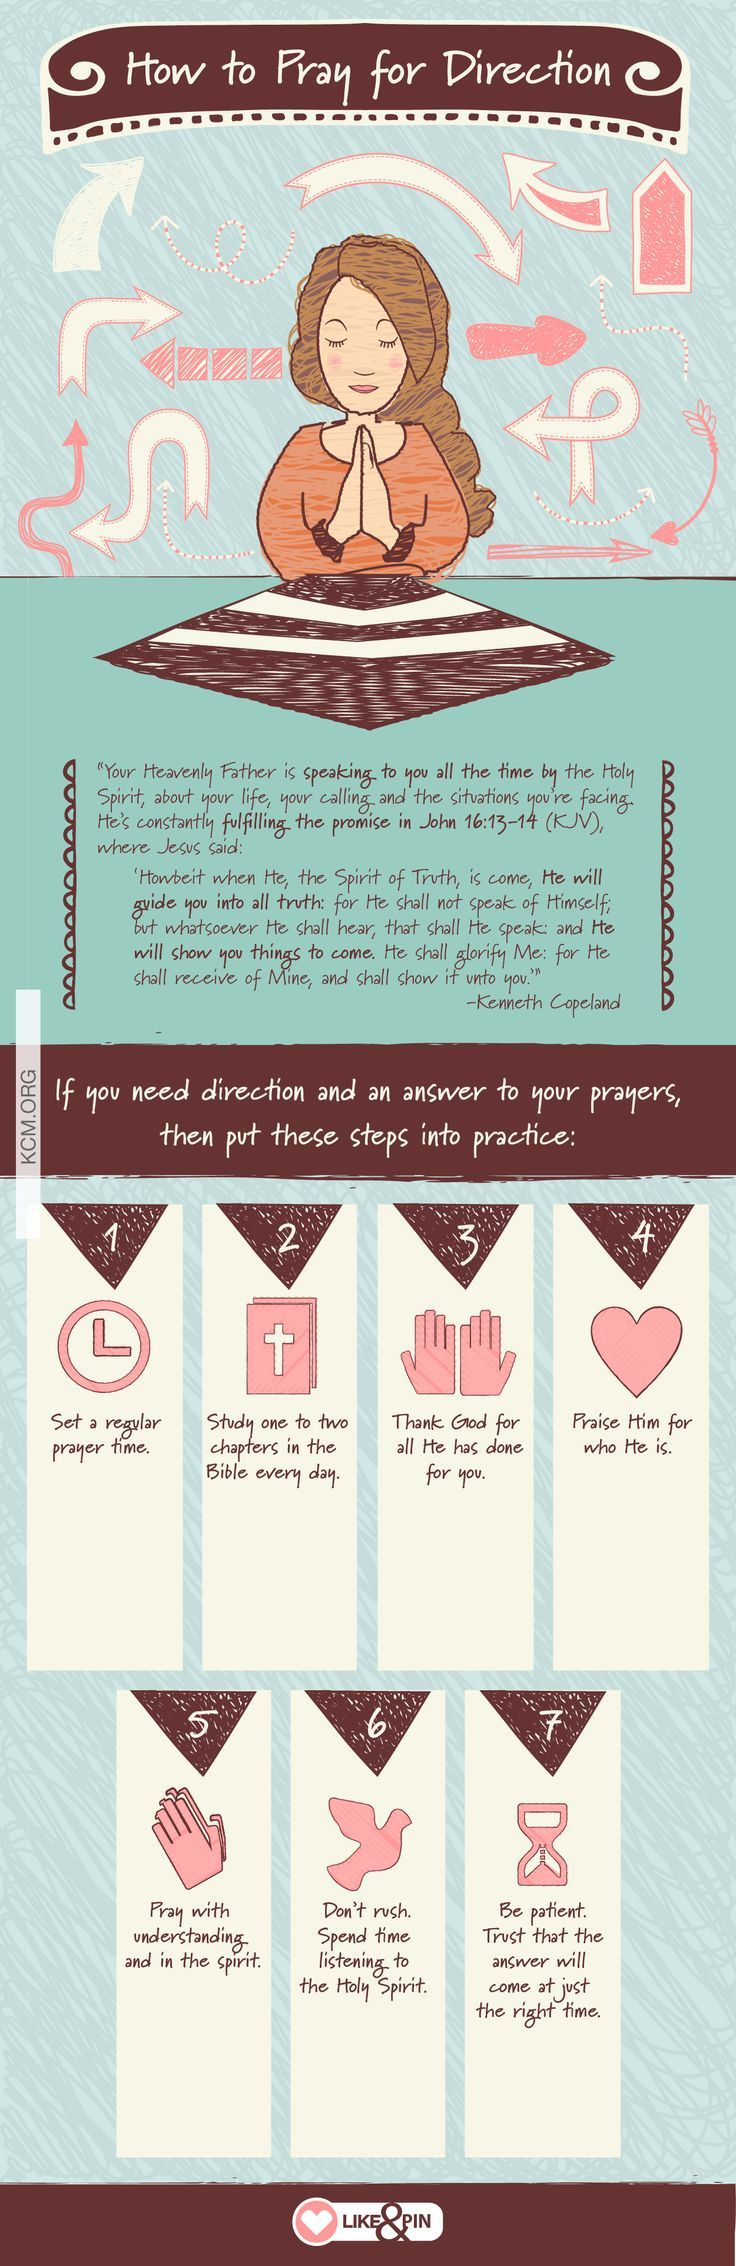 If you need direction and an answer to your prayers, then put these steps into practice! Learn more about getting the direction you need from God here: http://kennethcopelandministries.org/get-direction-need-god/